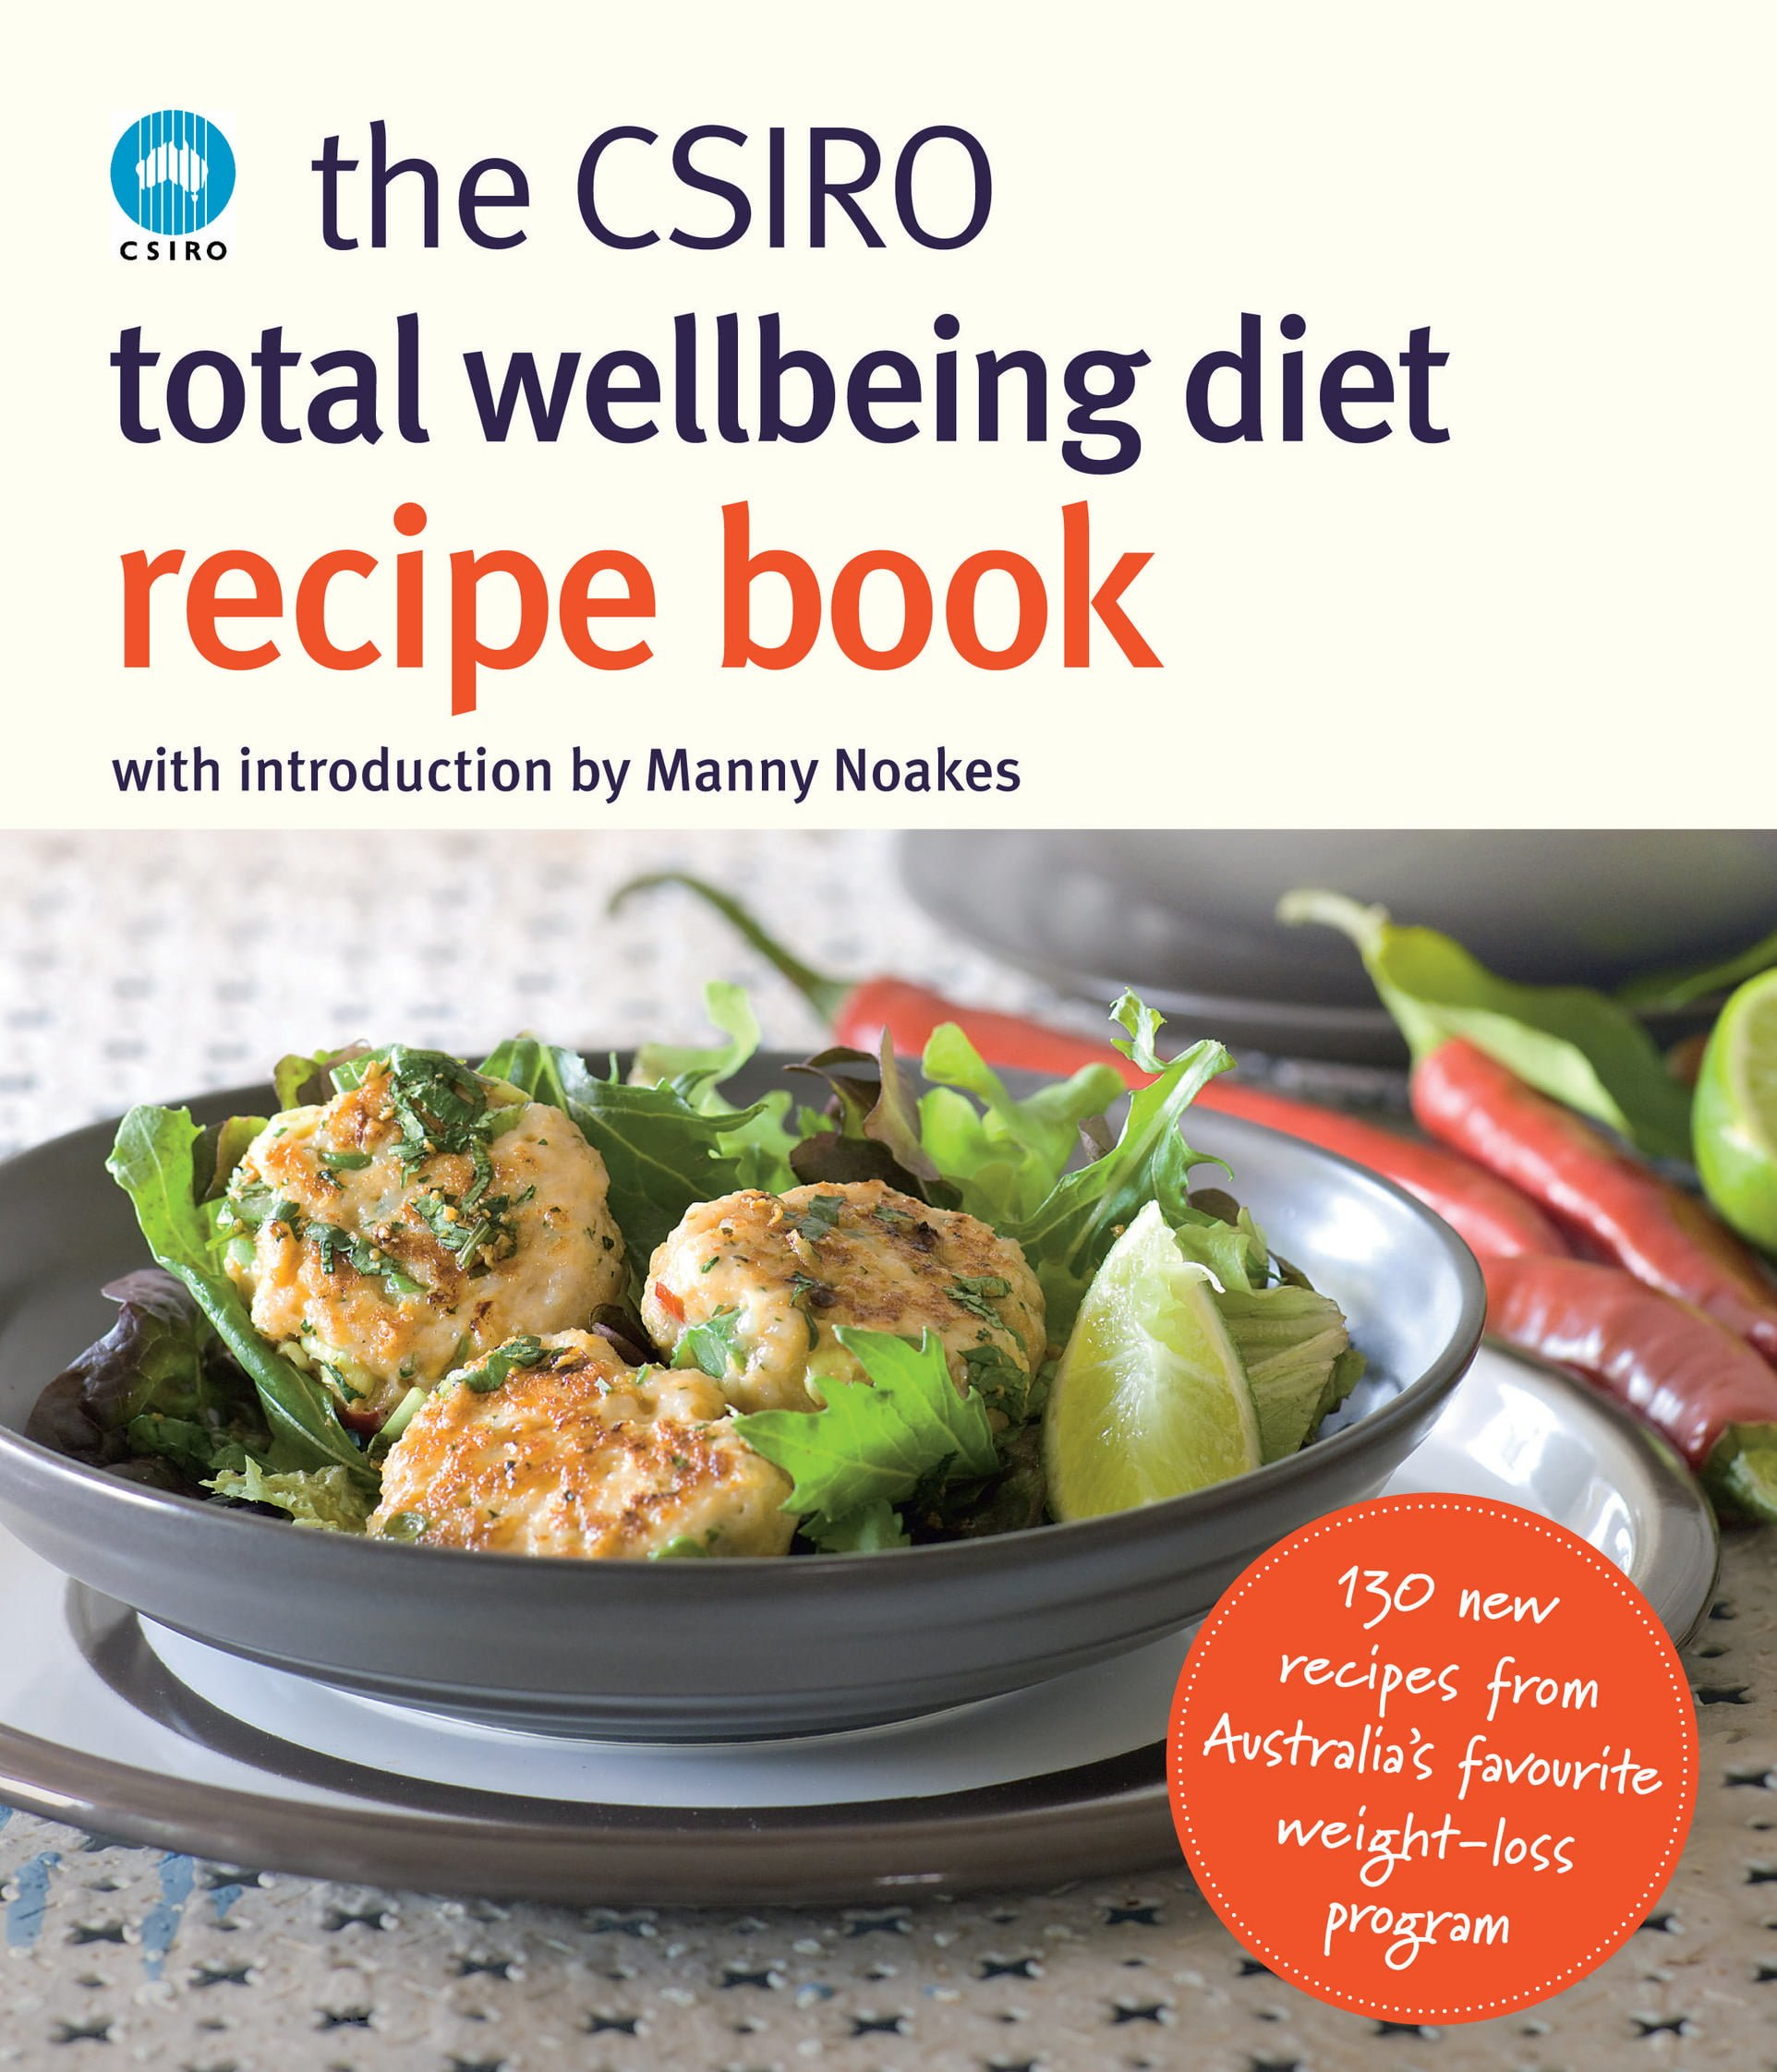 The csiro total wellbeing diet recipe book better reading wellbeing diet recipe book by the csiro dr manny noakes forumfinder Images